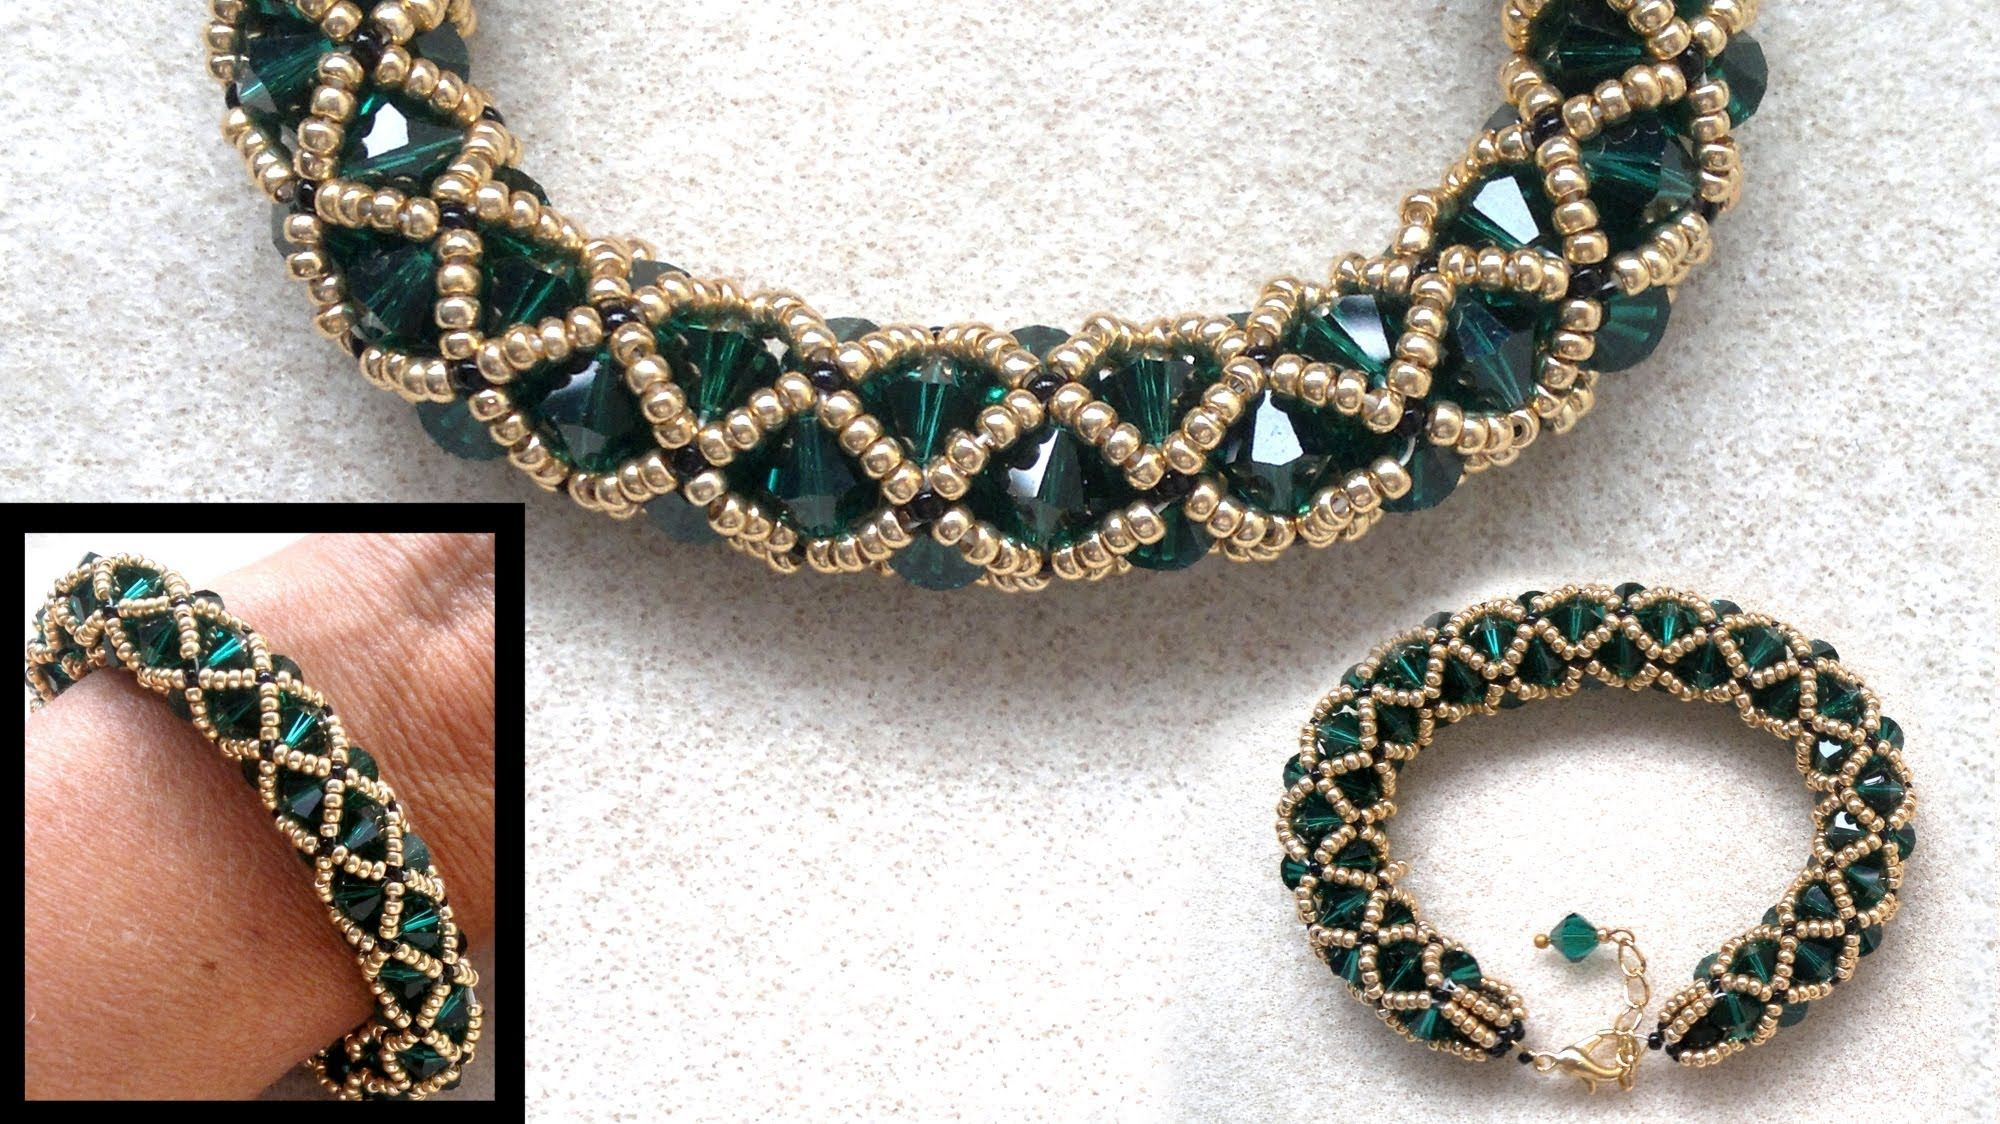 Beading4perfectionists : Netted bracelet with 6mm Swarovski and seedbead...